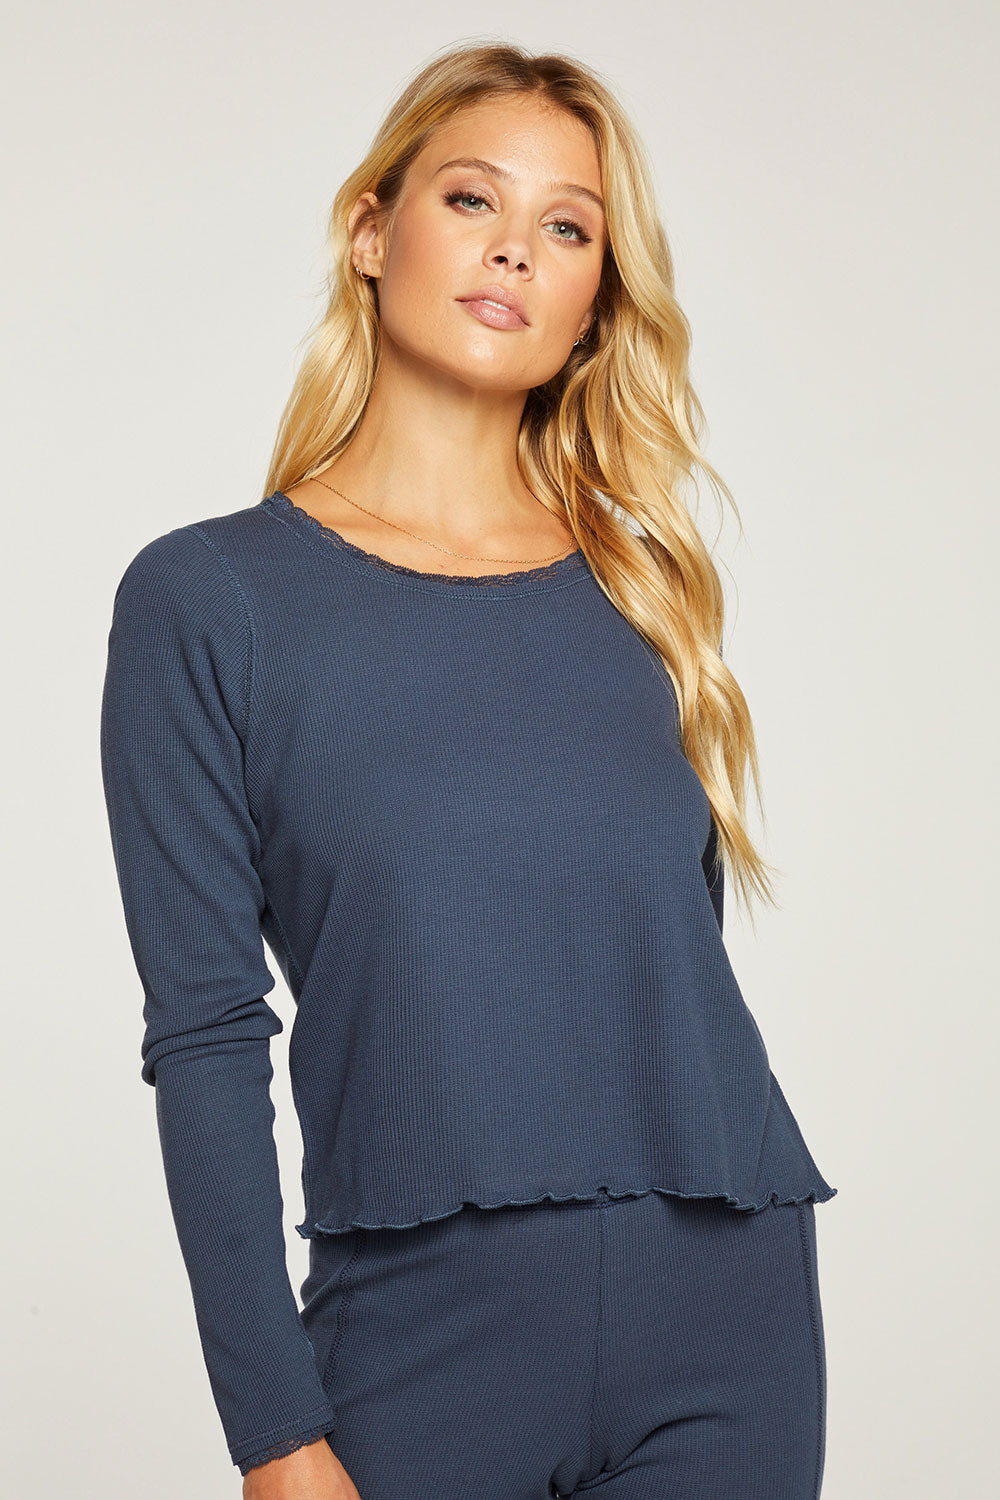 Heritage Waffle Lace Long John Layering Tee with Thumbhole WOMENS - chaserbrand